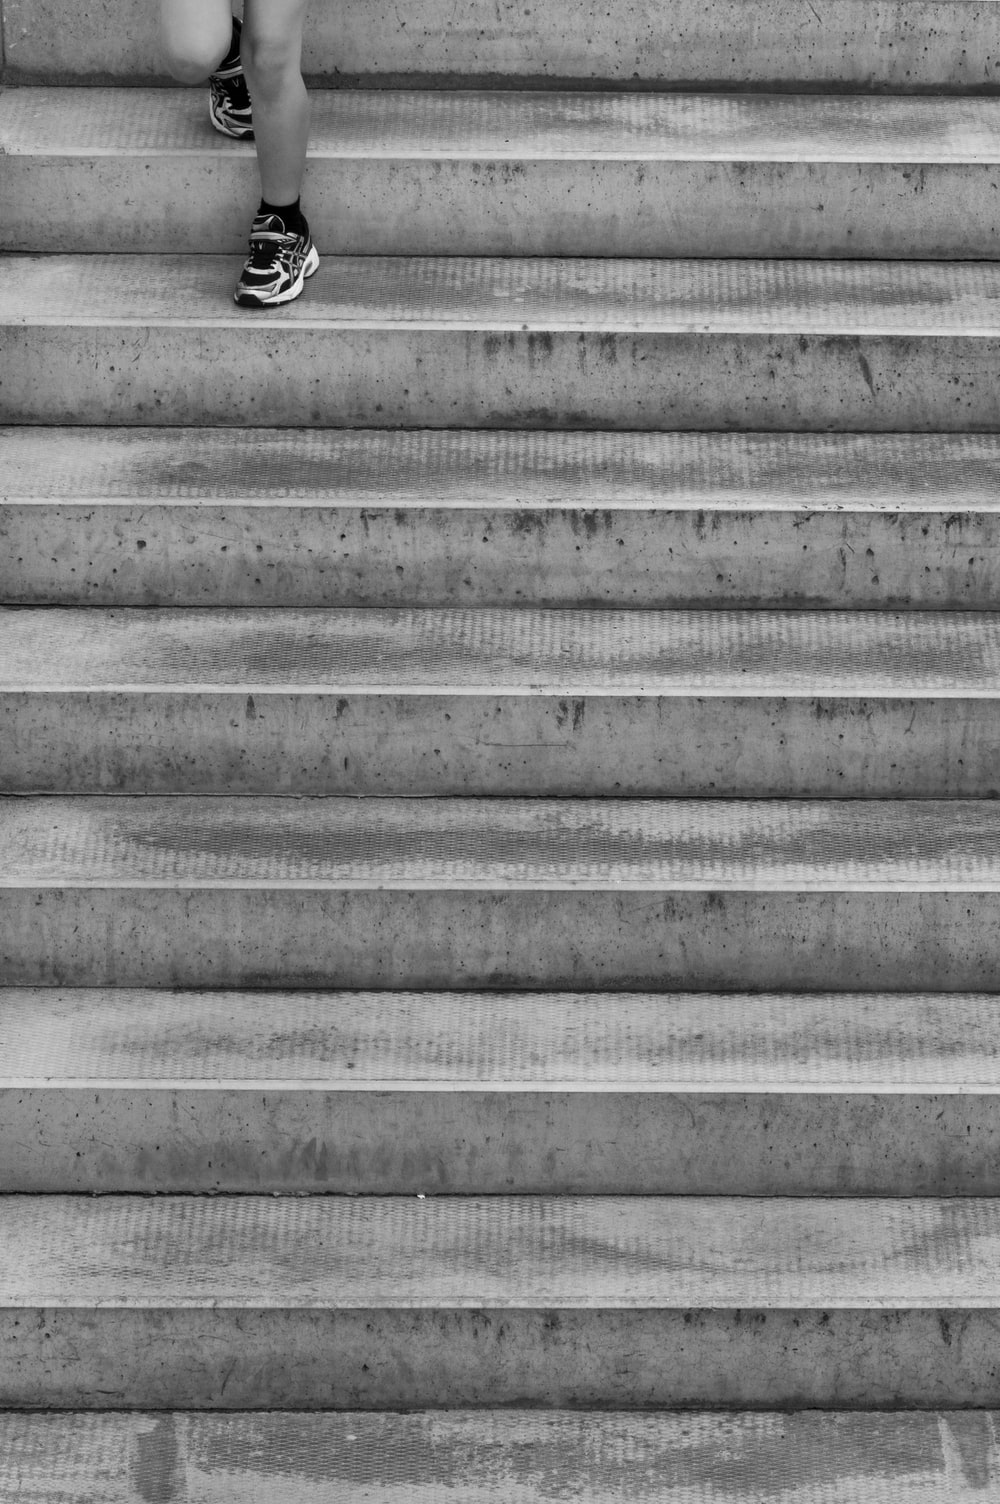 grayscale photo of person's foot on staircase